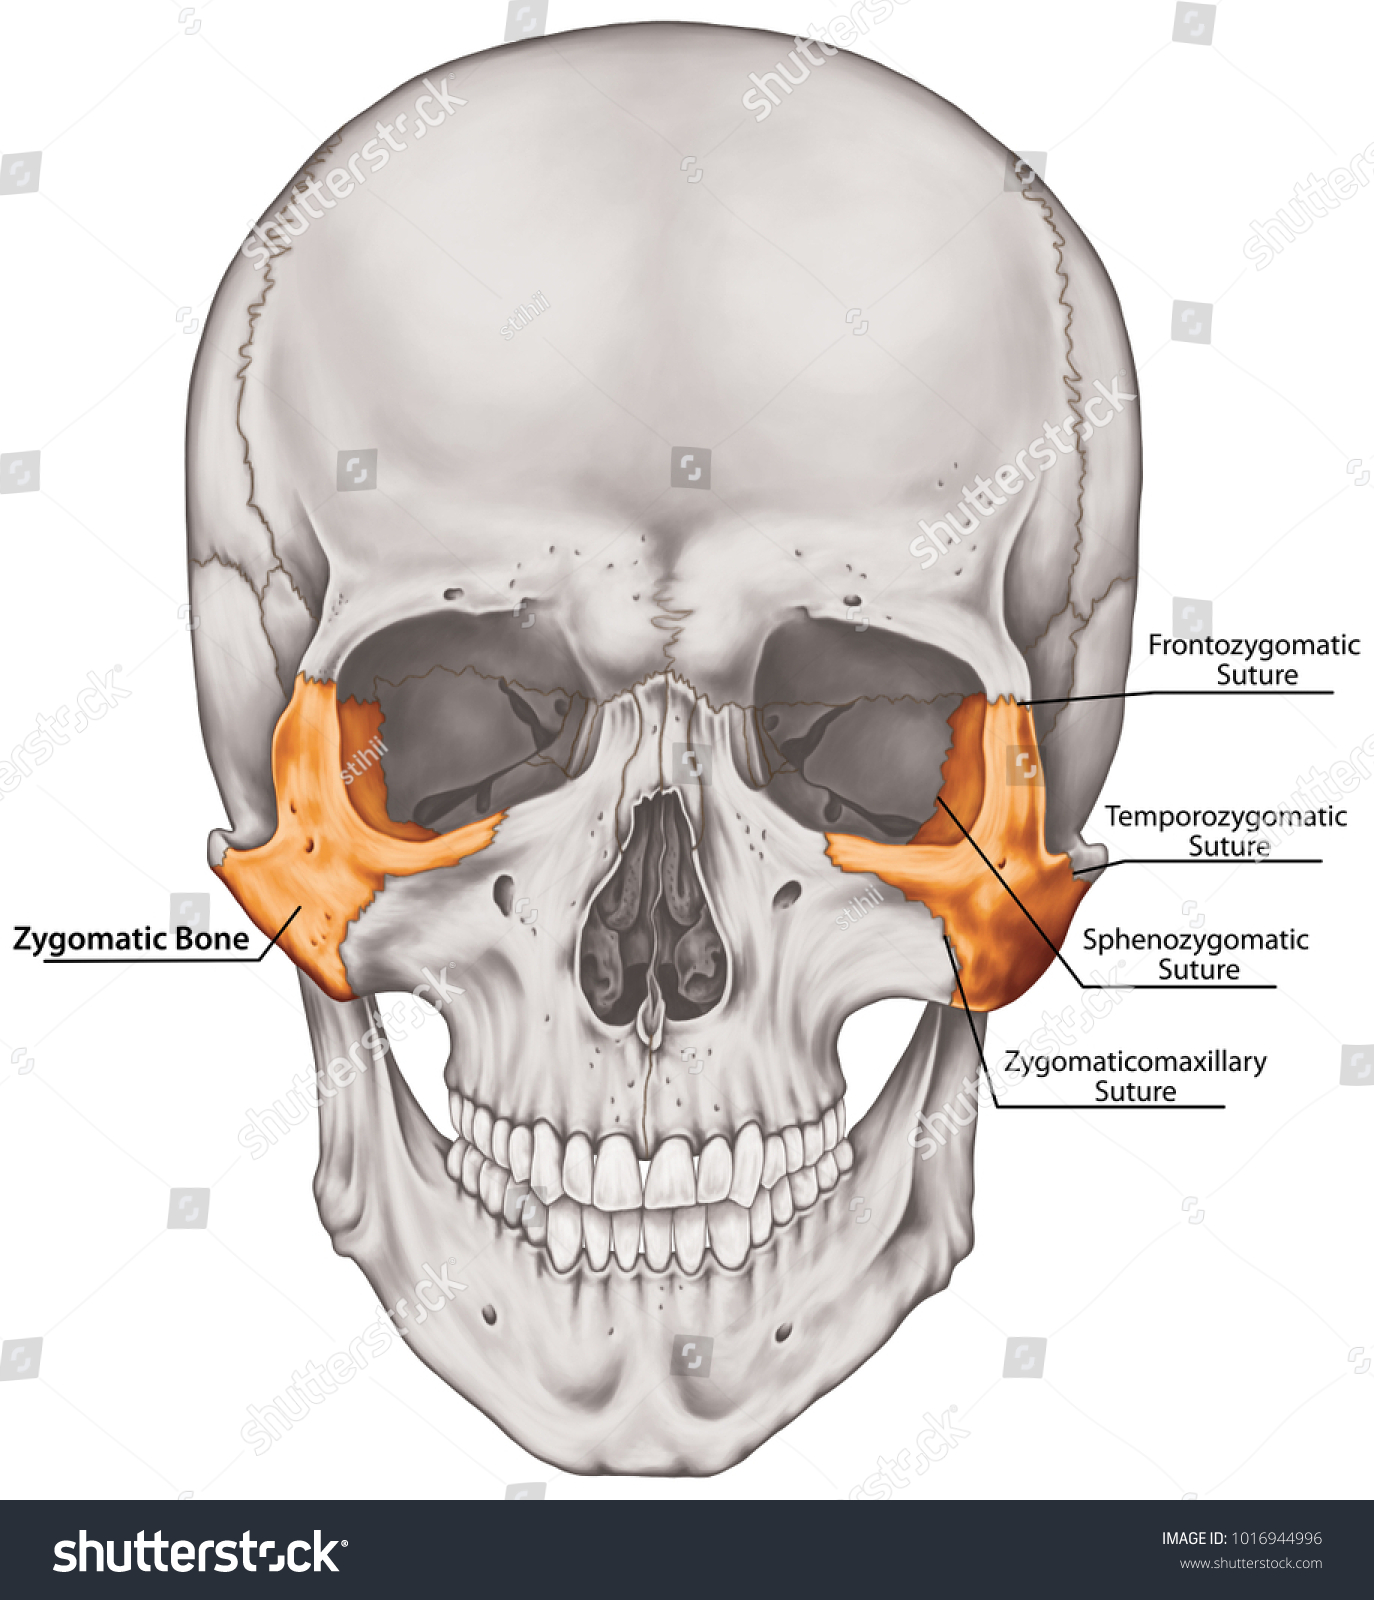 Zygomatic Bone Cranium Bones Head Skull Stock Illustration